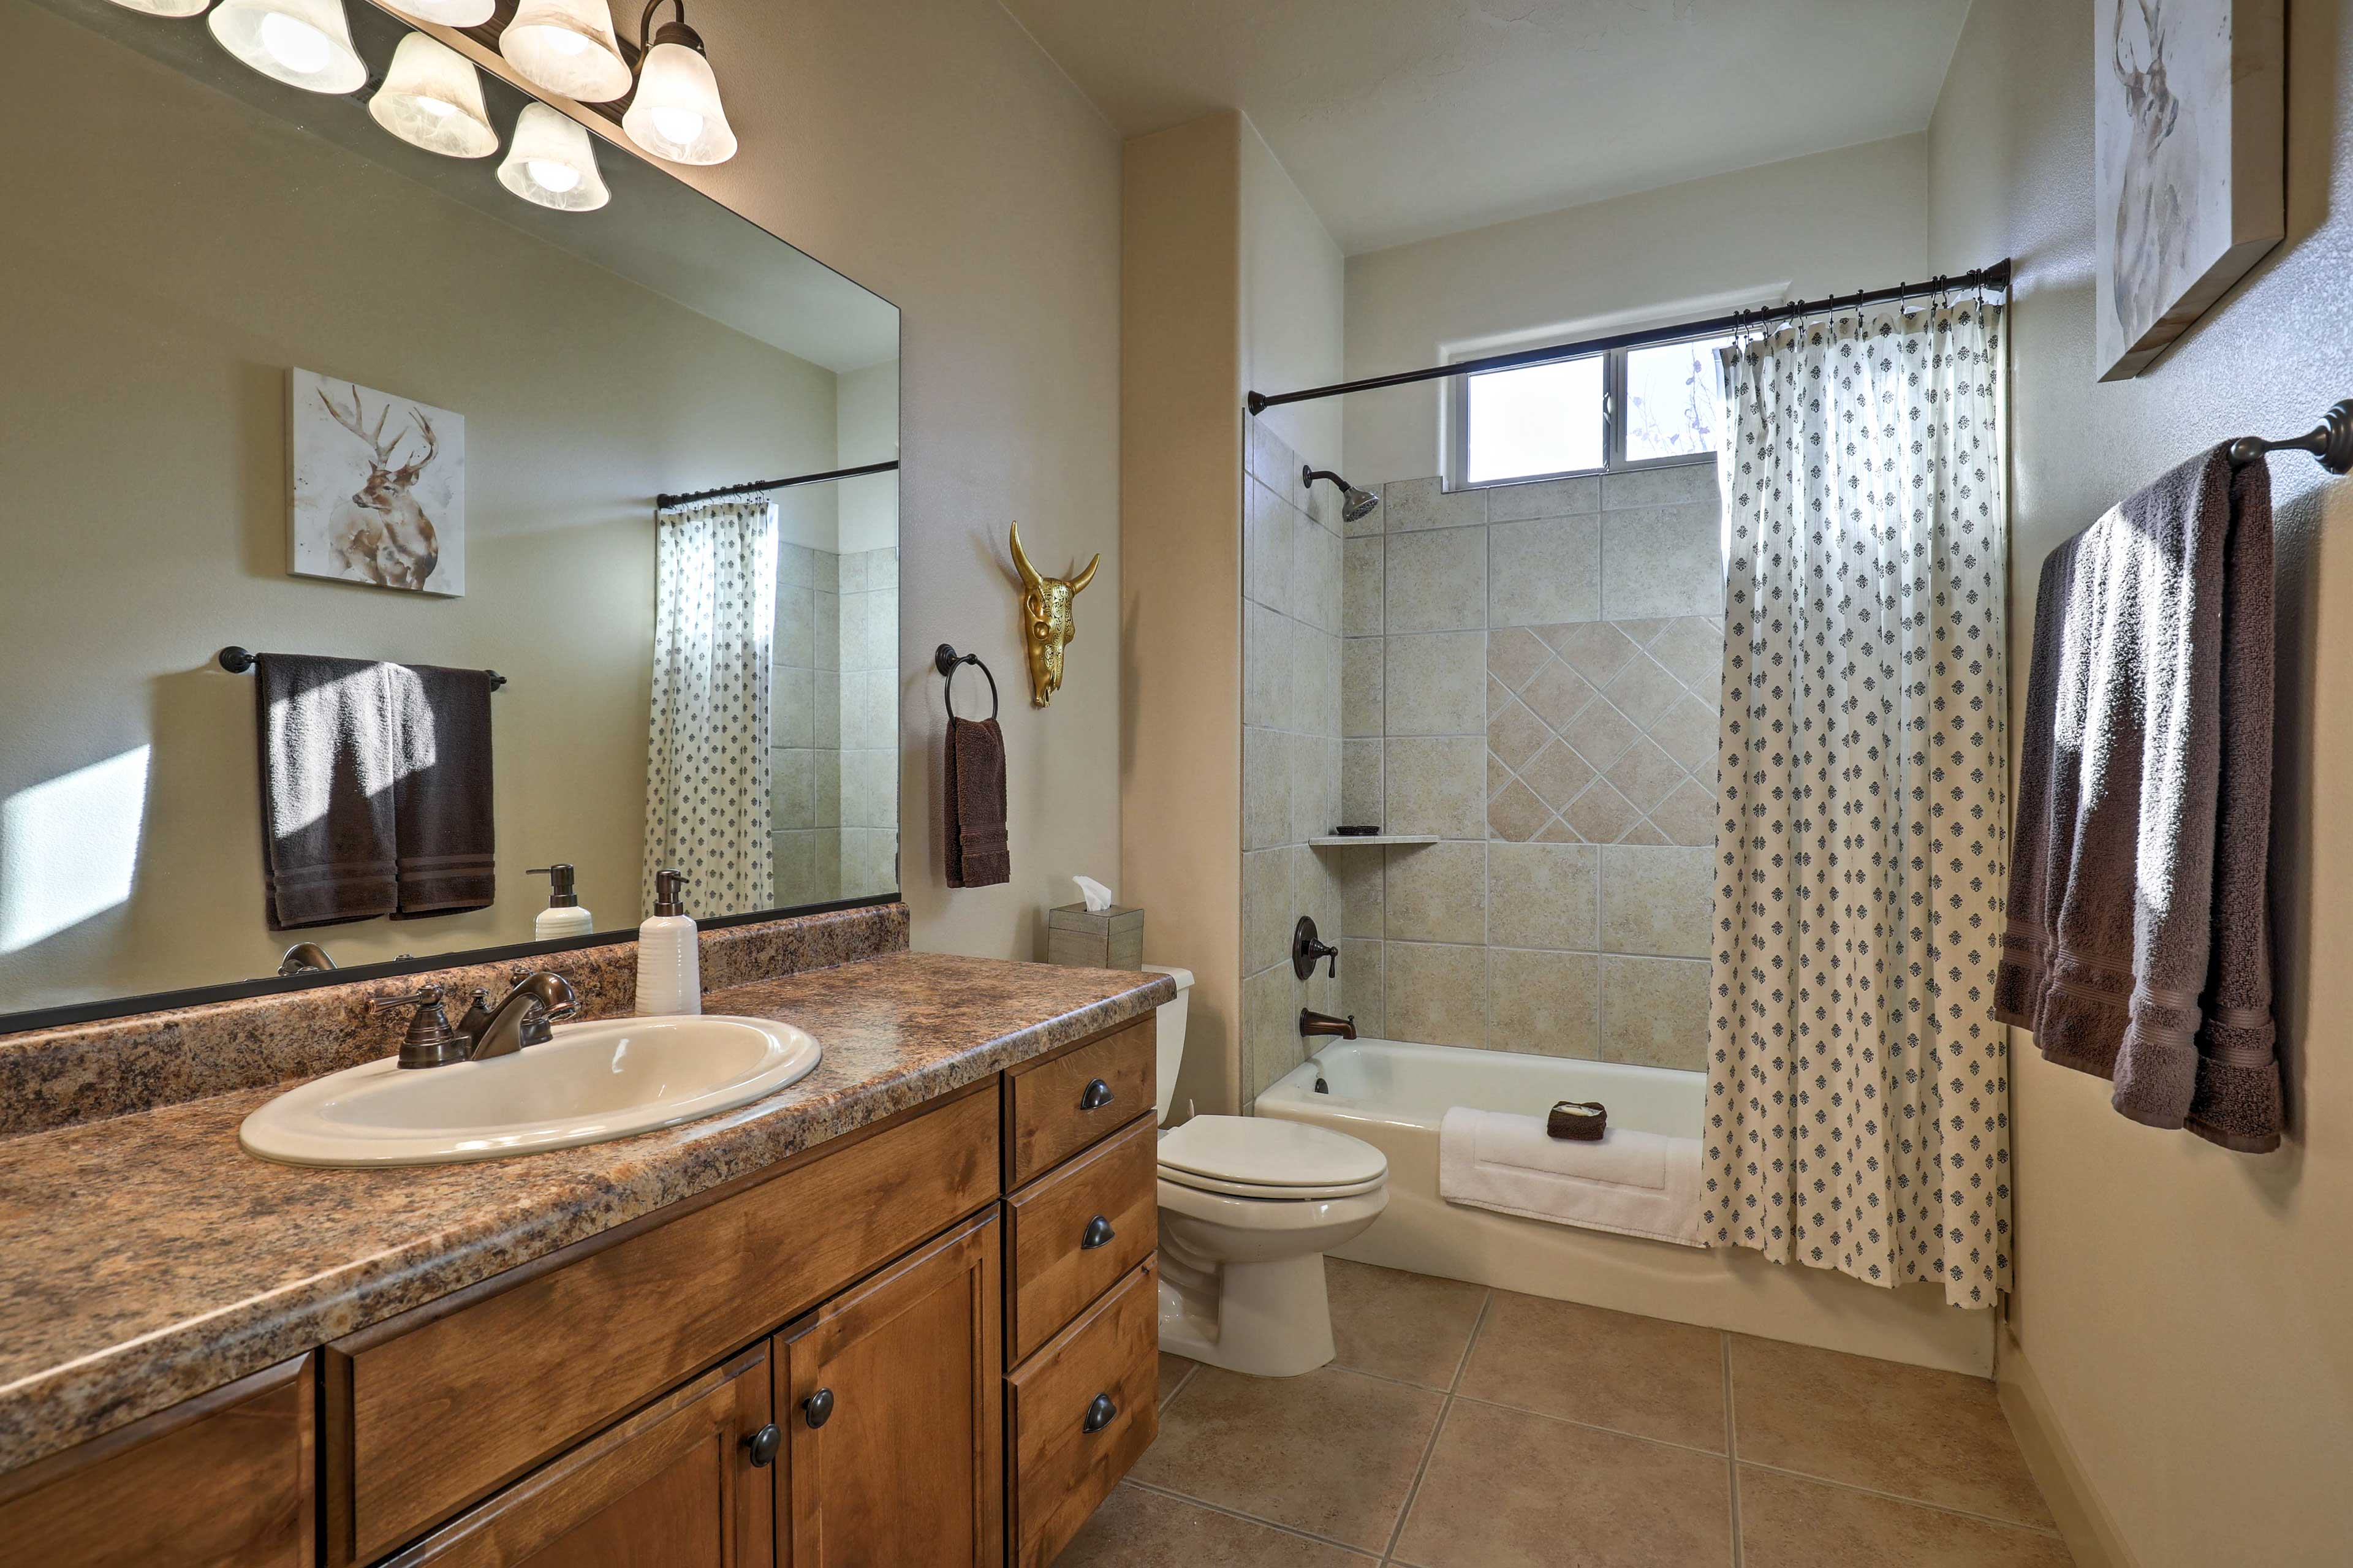 Get ready for the day in the walk-in shower.